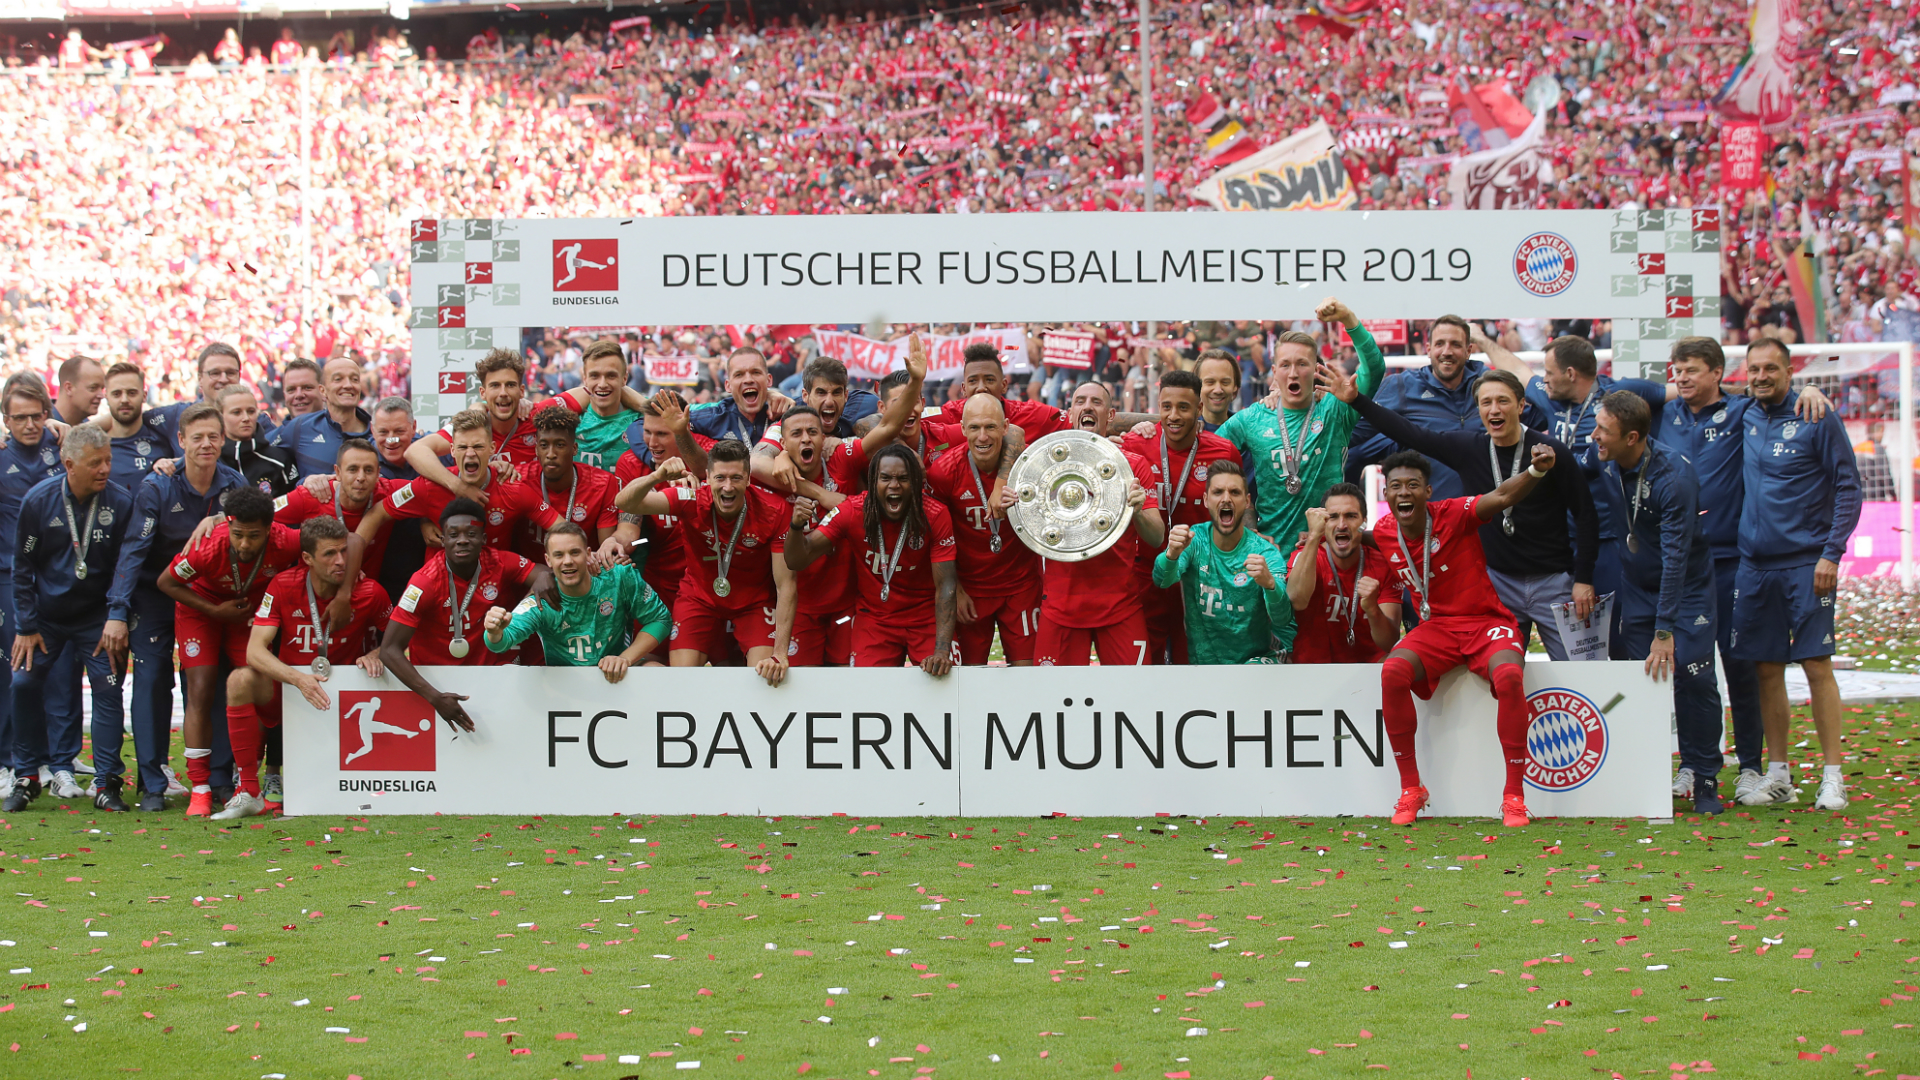 Bundesliga 2019-20 fixtures: Bayern Munich host Hertha in season opener